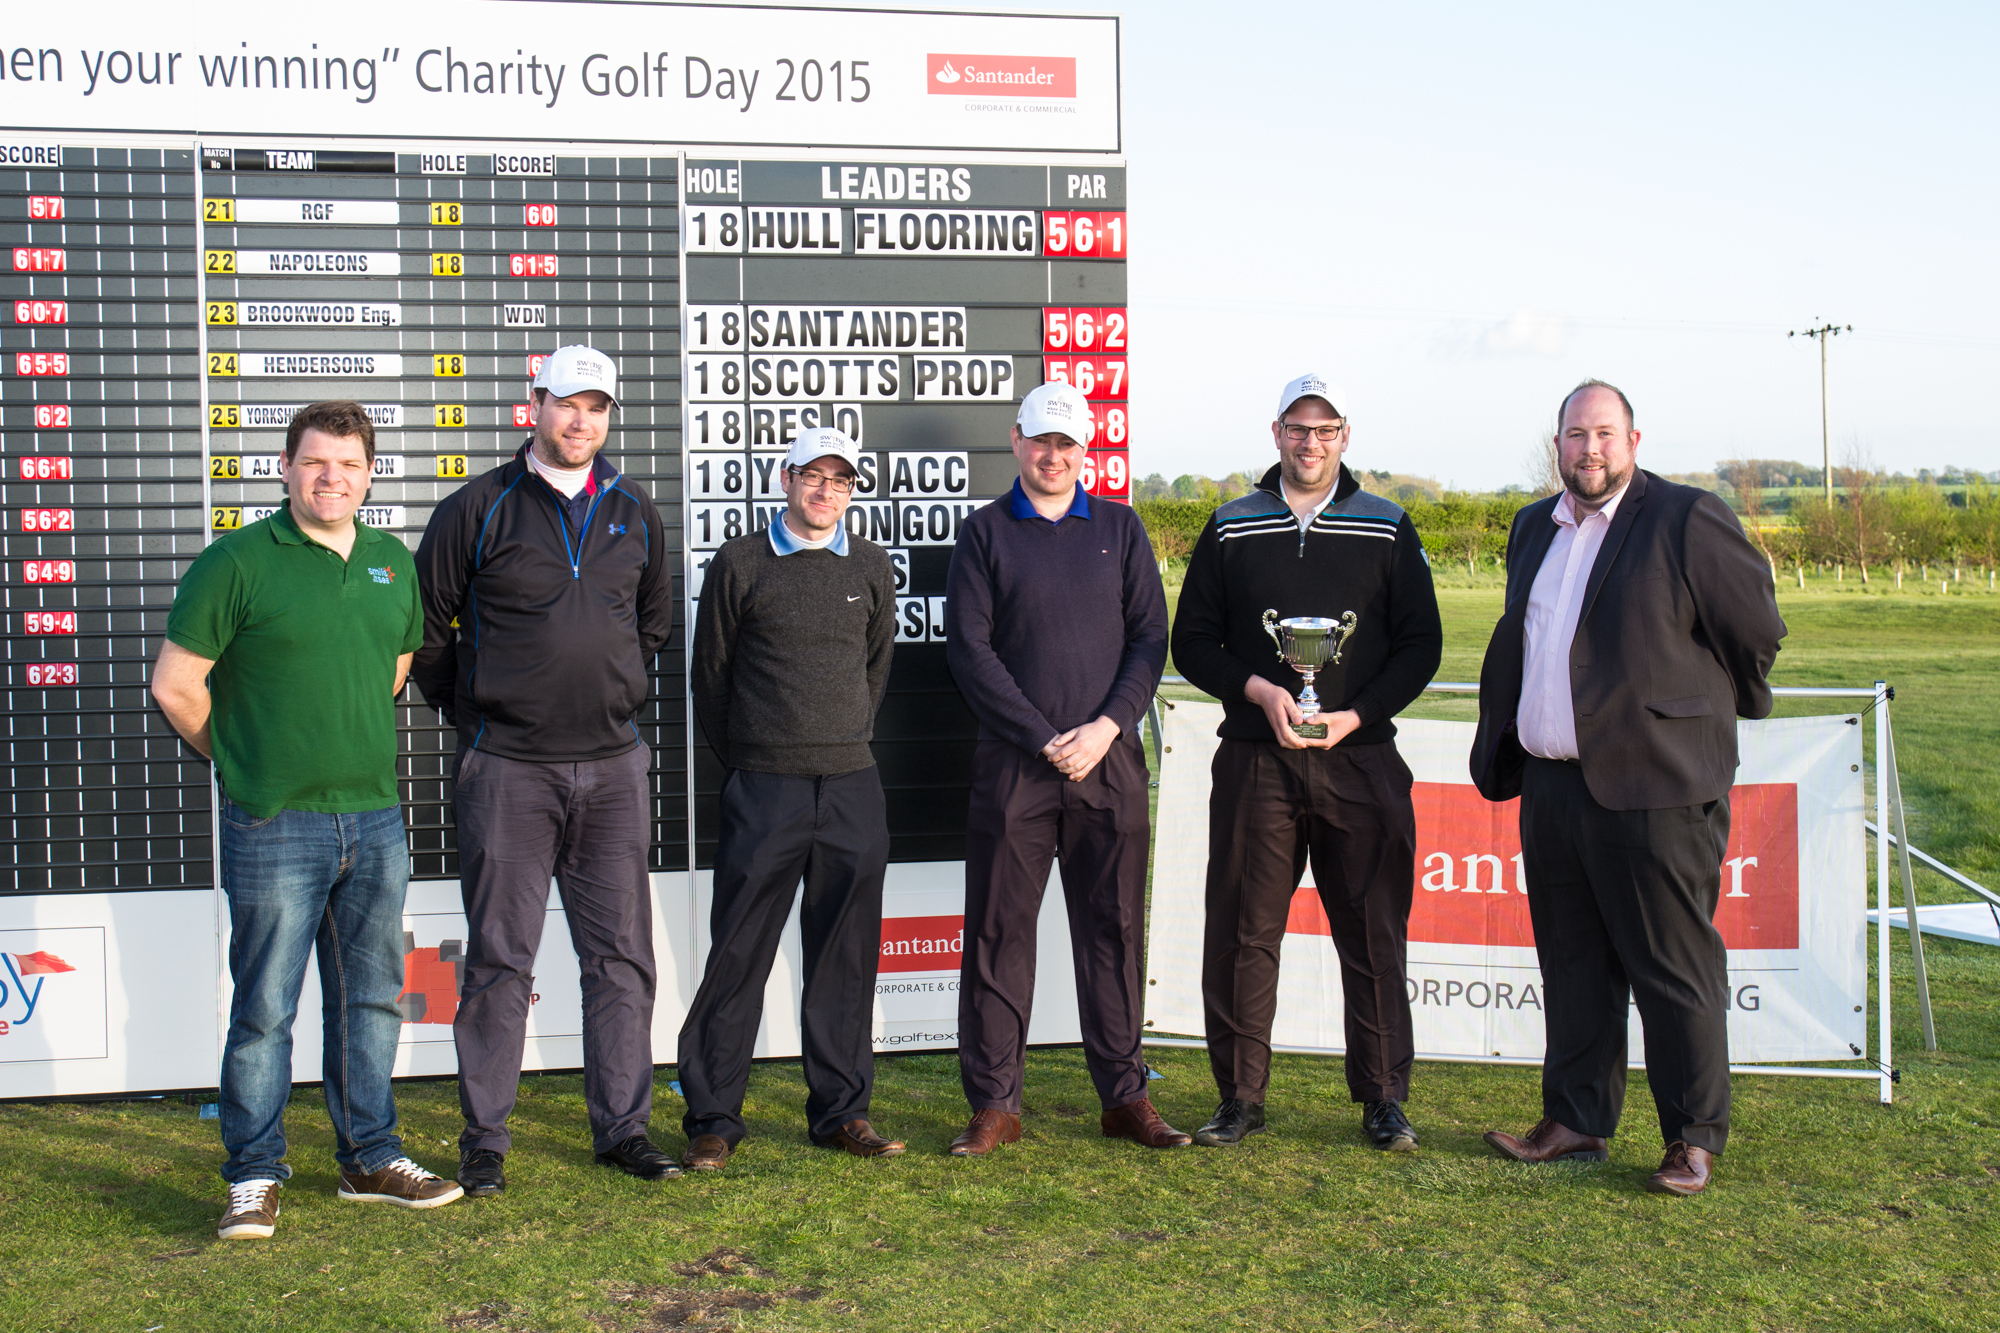 Smile Foundation Golf Day with Santander 2015